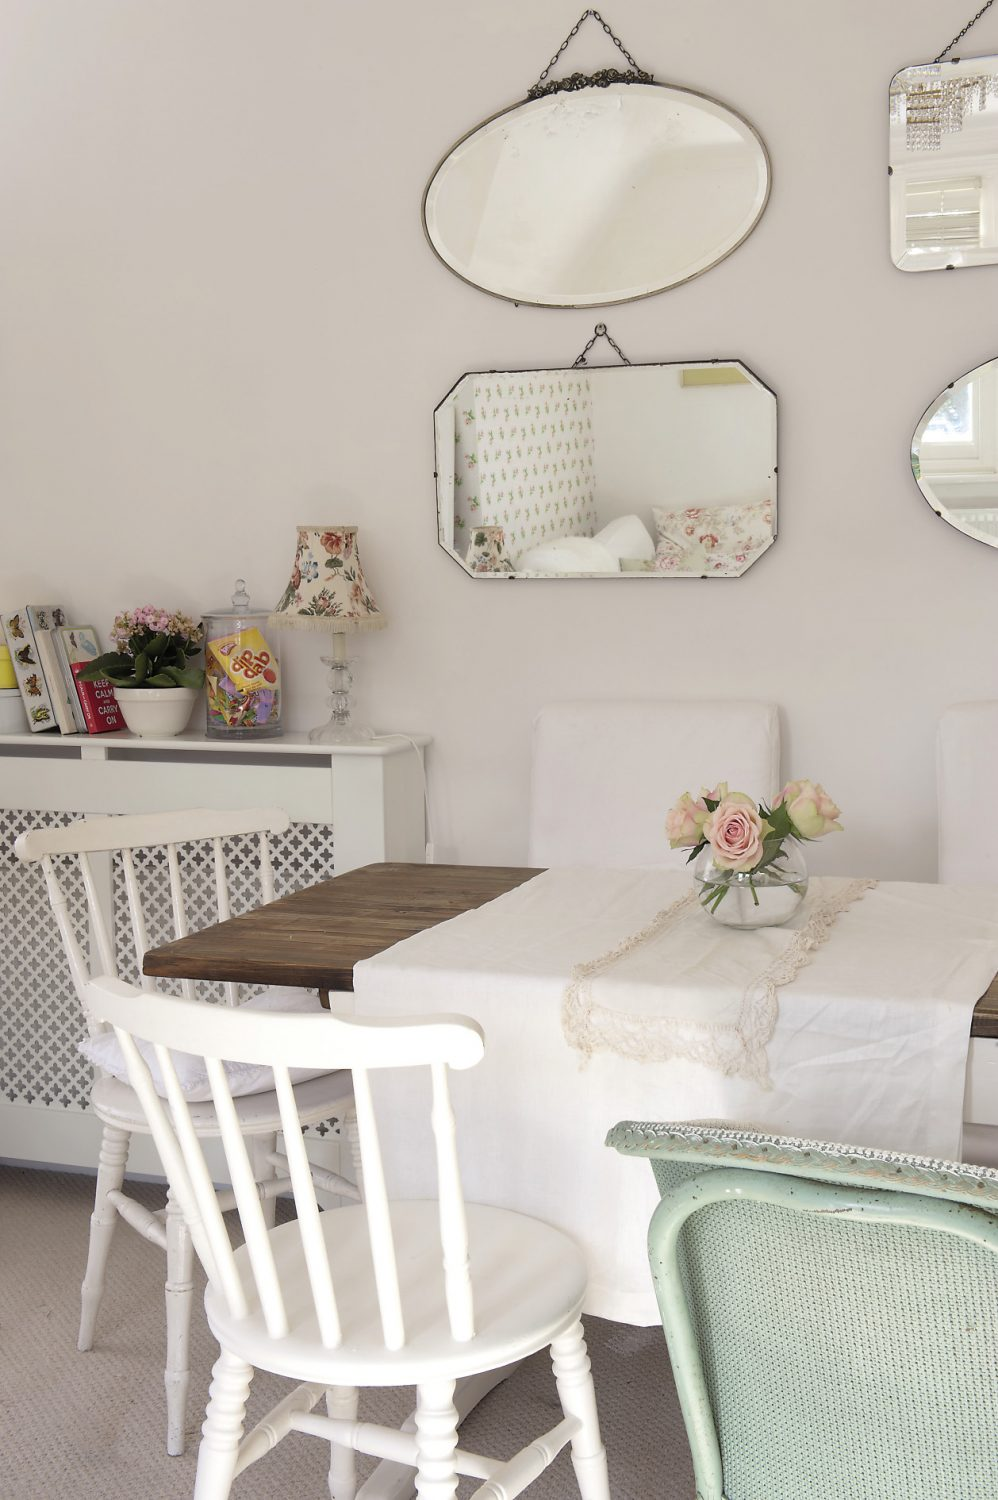 Mismatched chairs surround the rectangular French refectory table, and in the centre of the linen and lace runner there is a small glass vase of pale pink roses with pistachio green outer petals. On the wall above, Anastasia has grouped together four bevelled mirrors of varying shapes